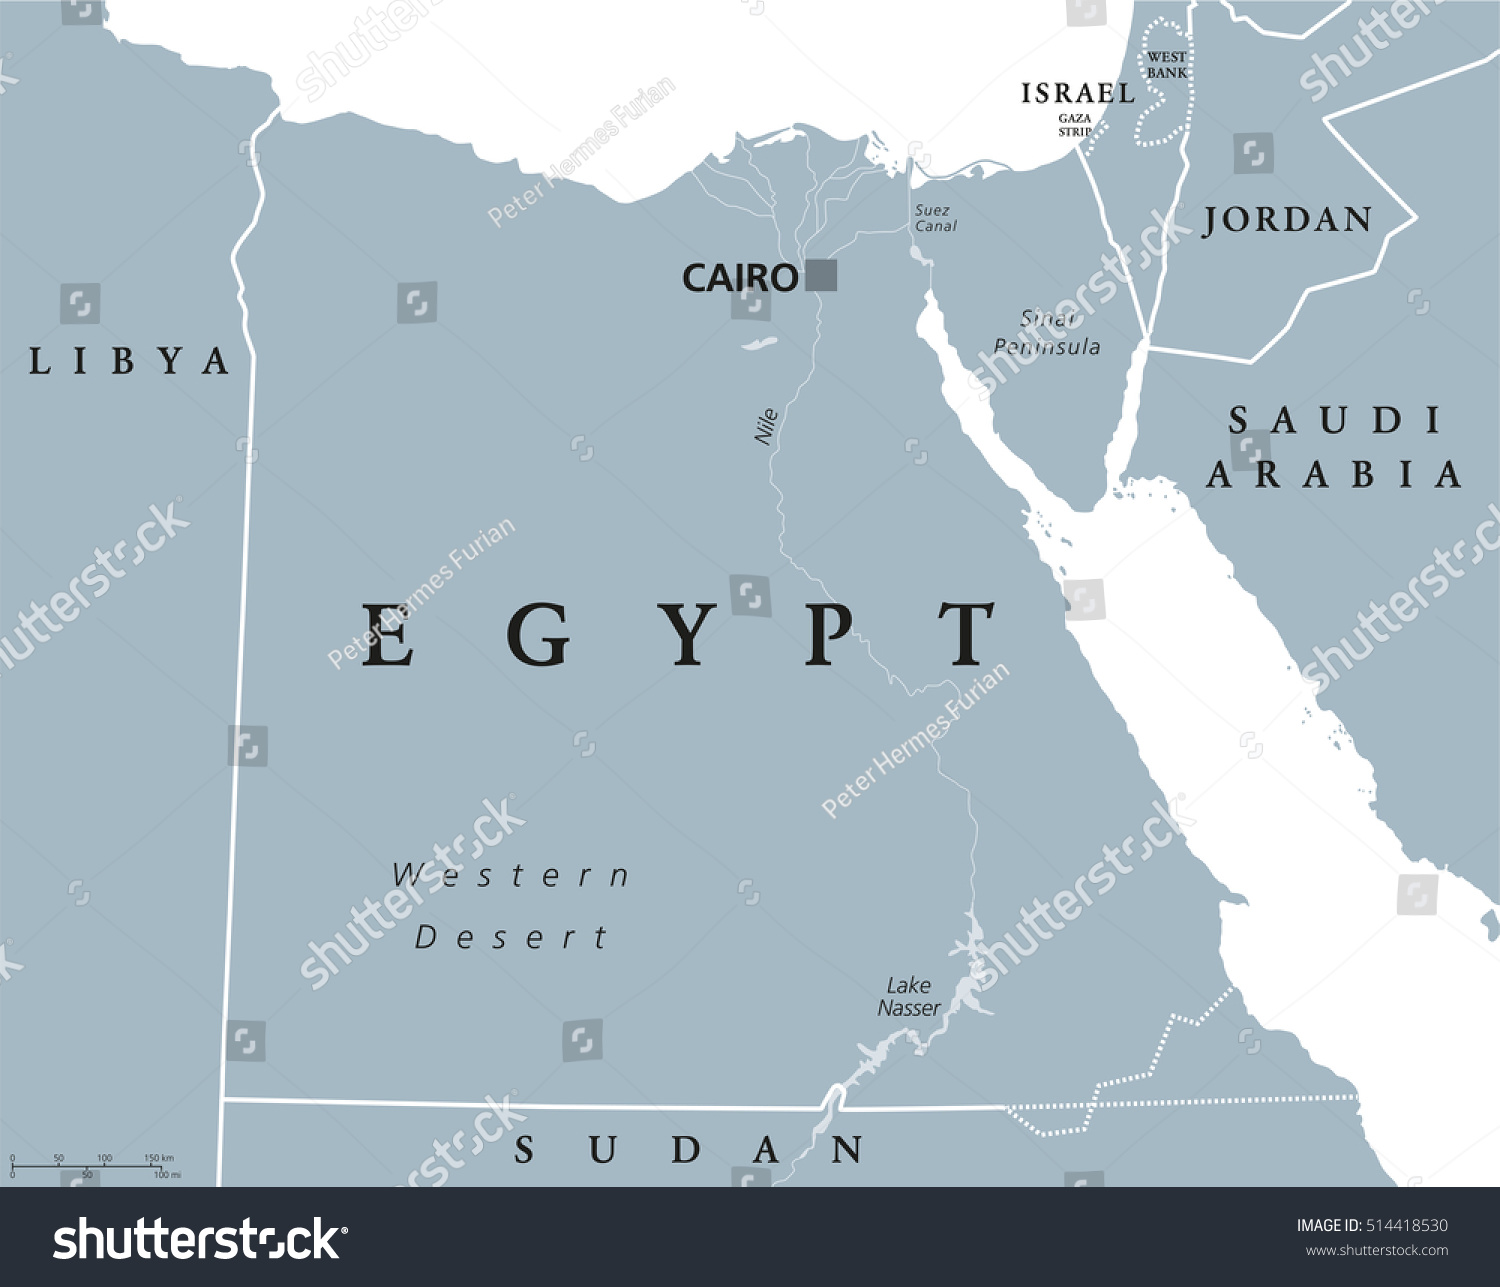 Egypt political map capital cairo nile vectores en stock 514418530 egypt political map with capital cairo with nile sinai peninsula and suez canal gumiabroncs Image collections